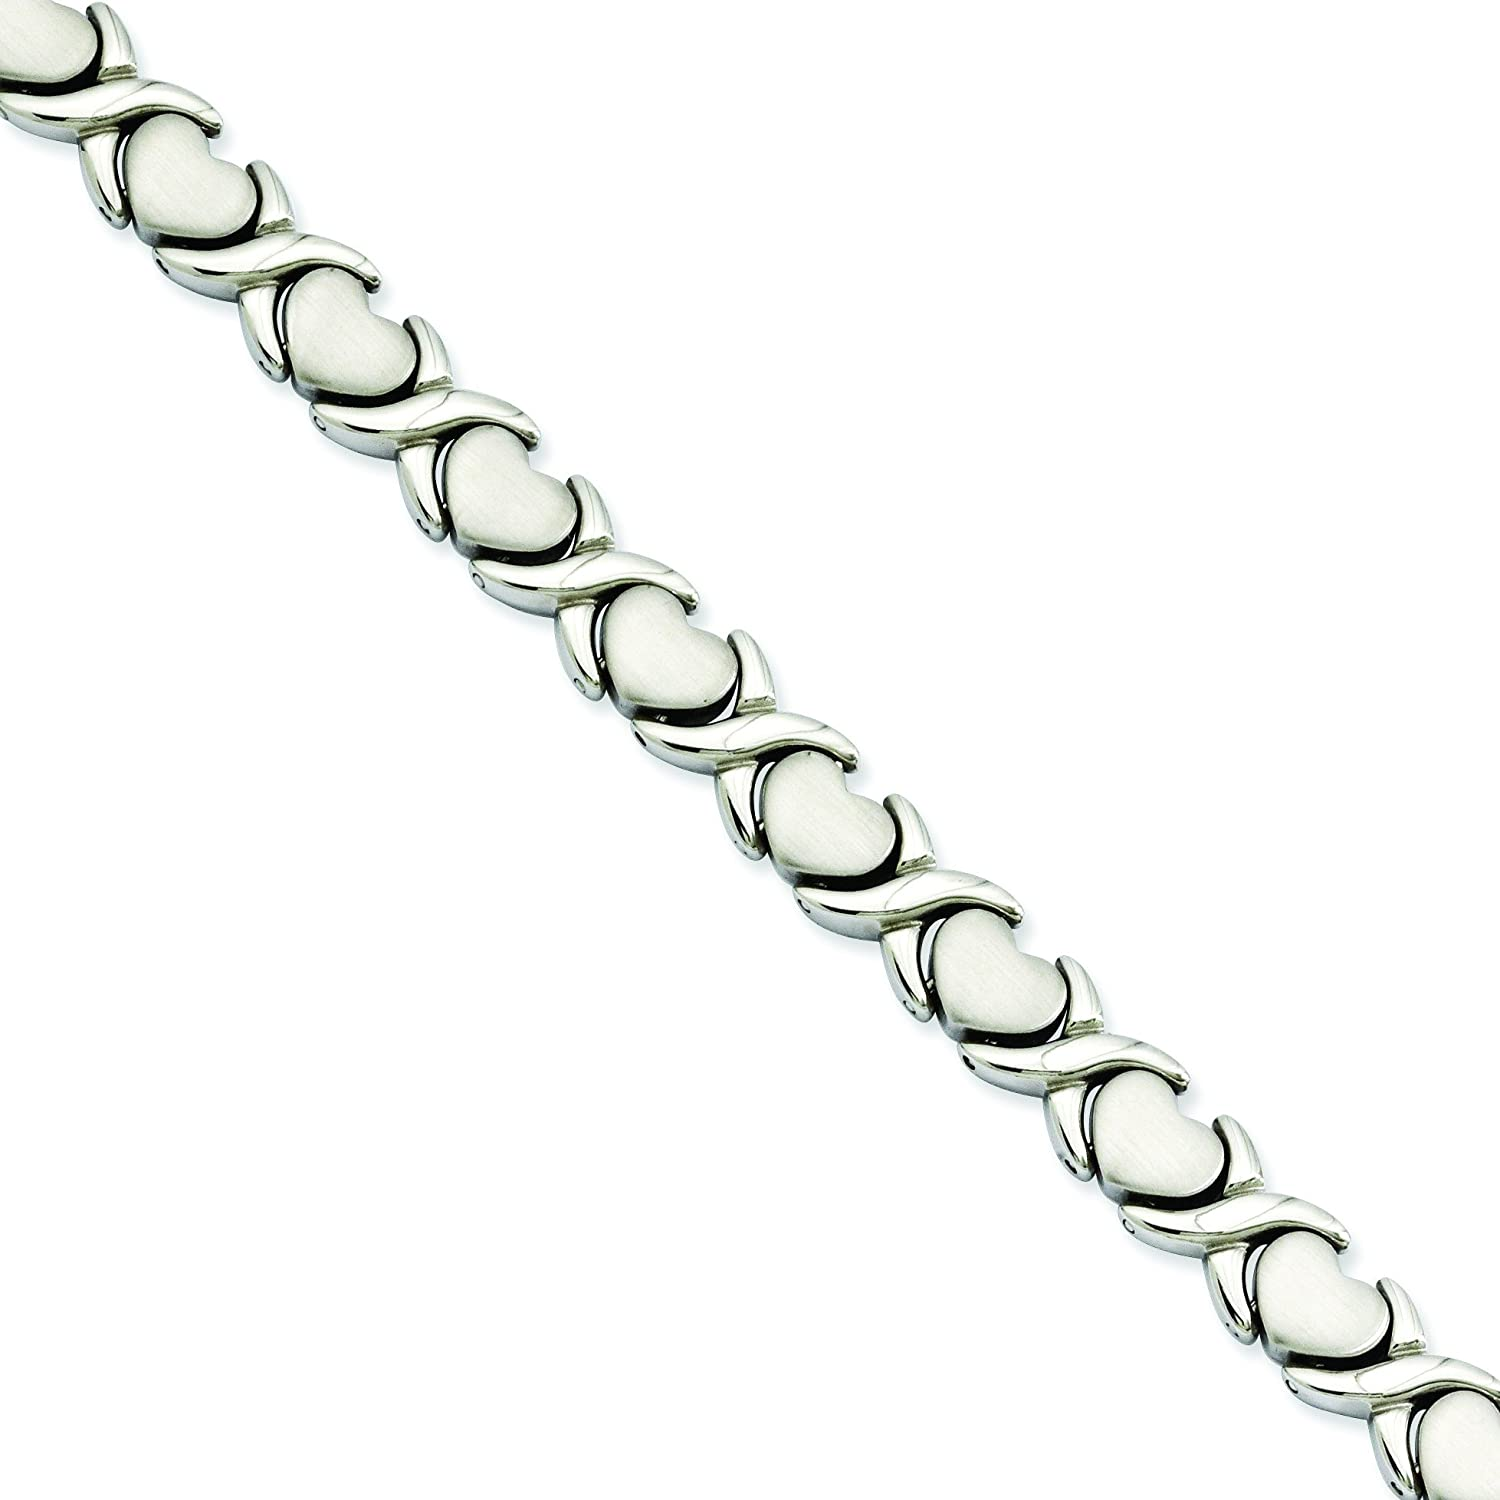 Shop4Silver Stainless Steel Stampato Very popular 7.5in High material Bracelet